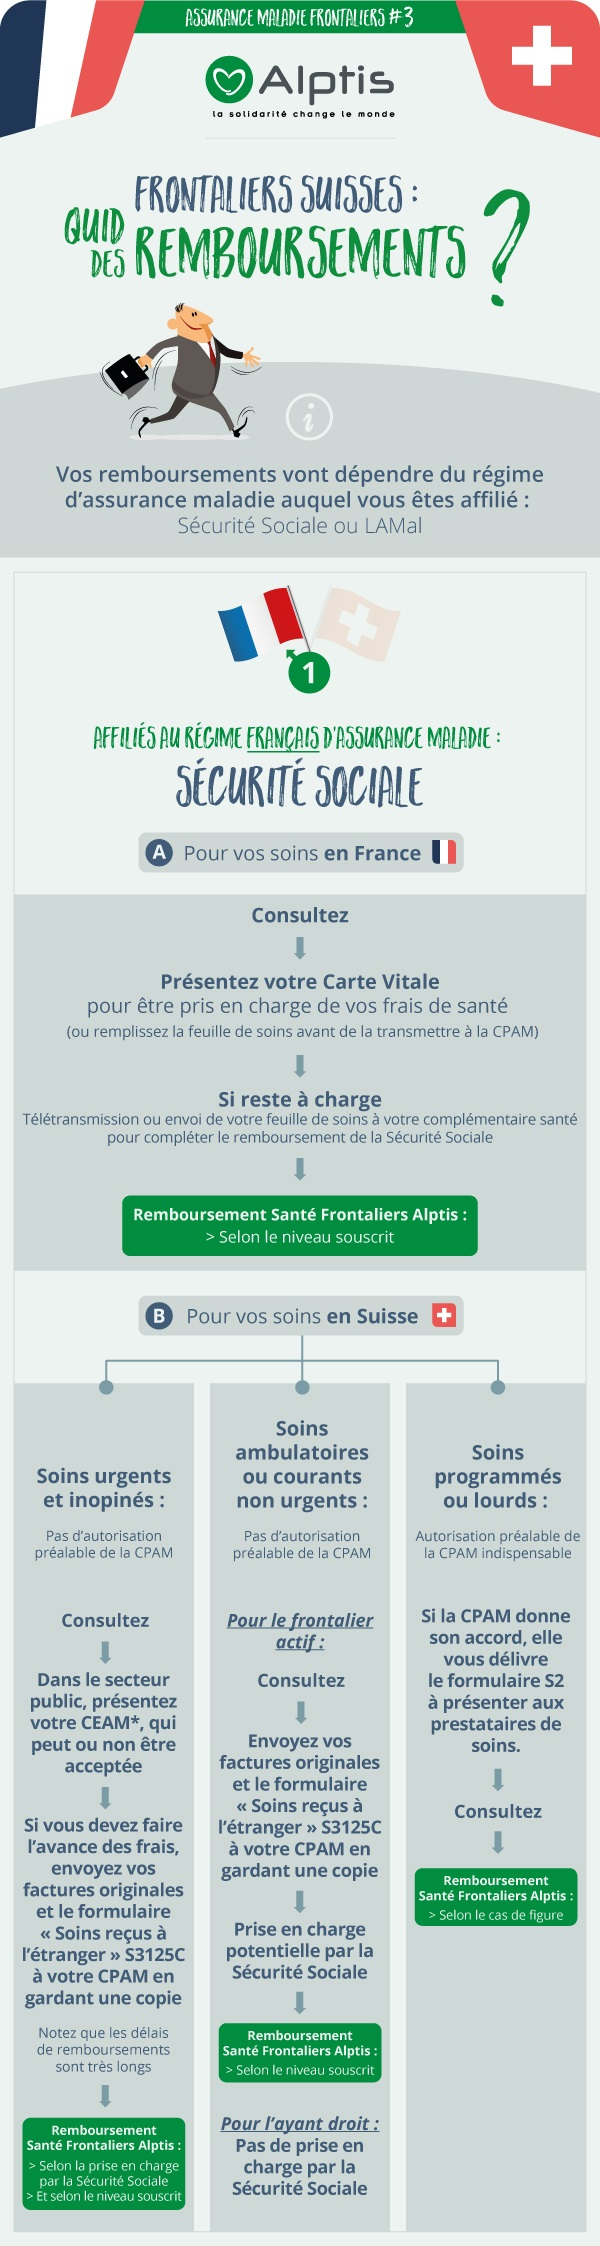 infographie3.1_frontaliers_201902